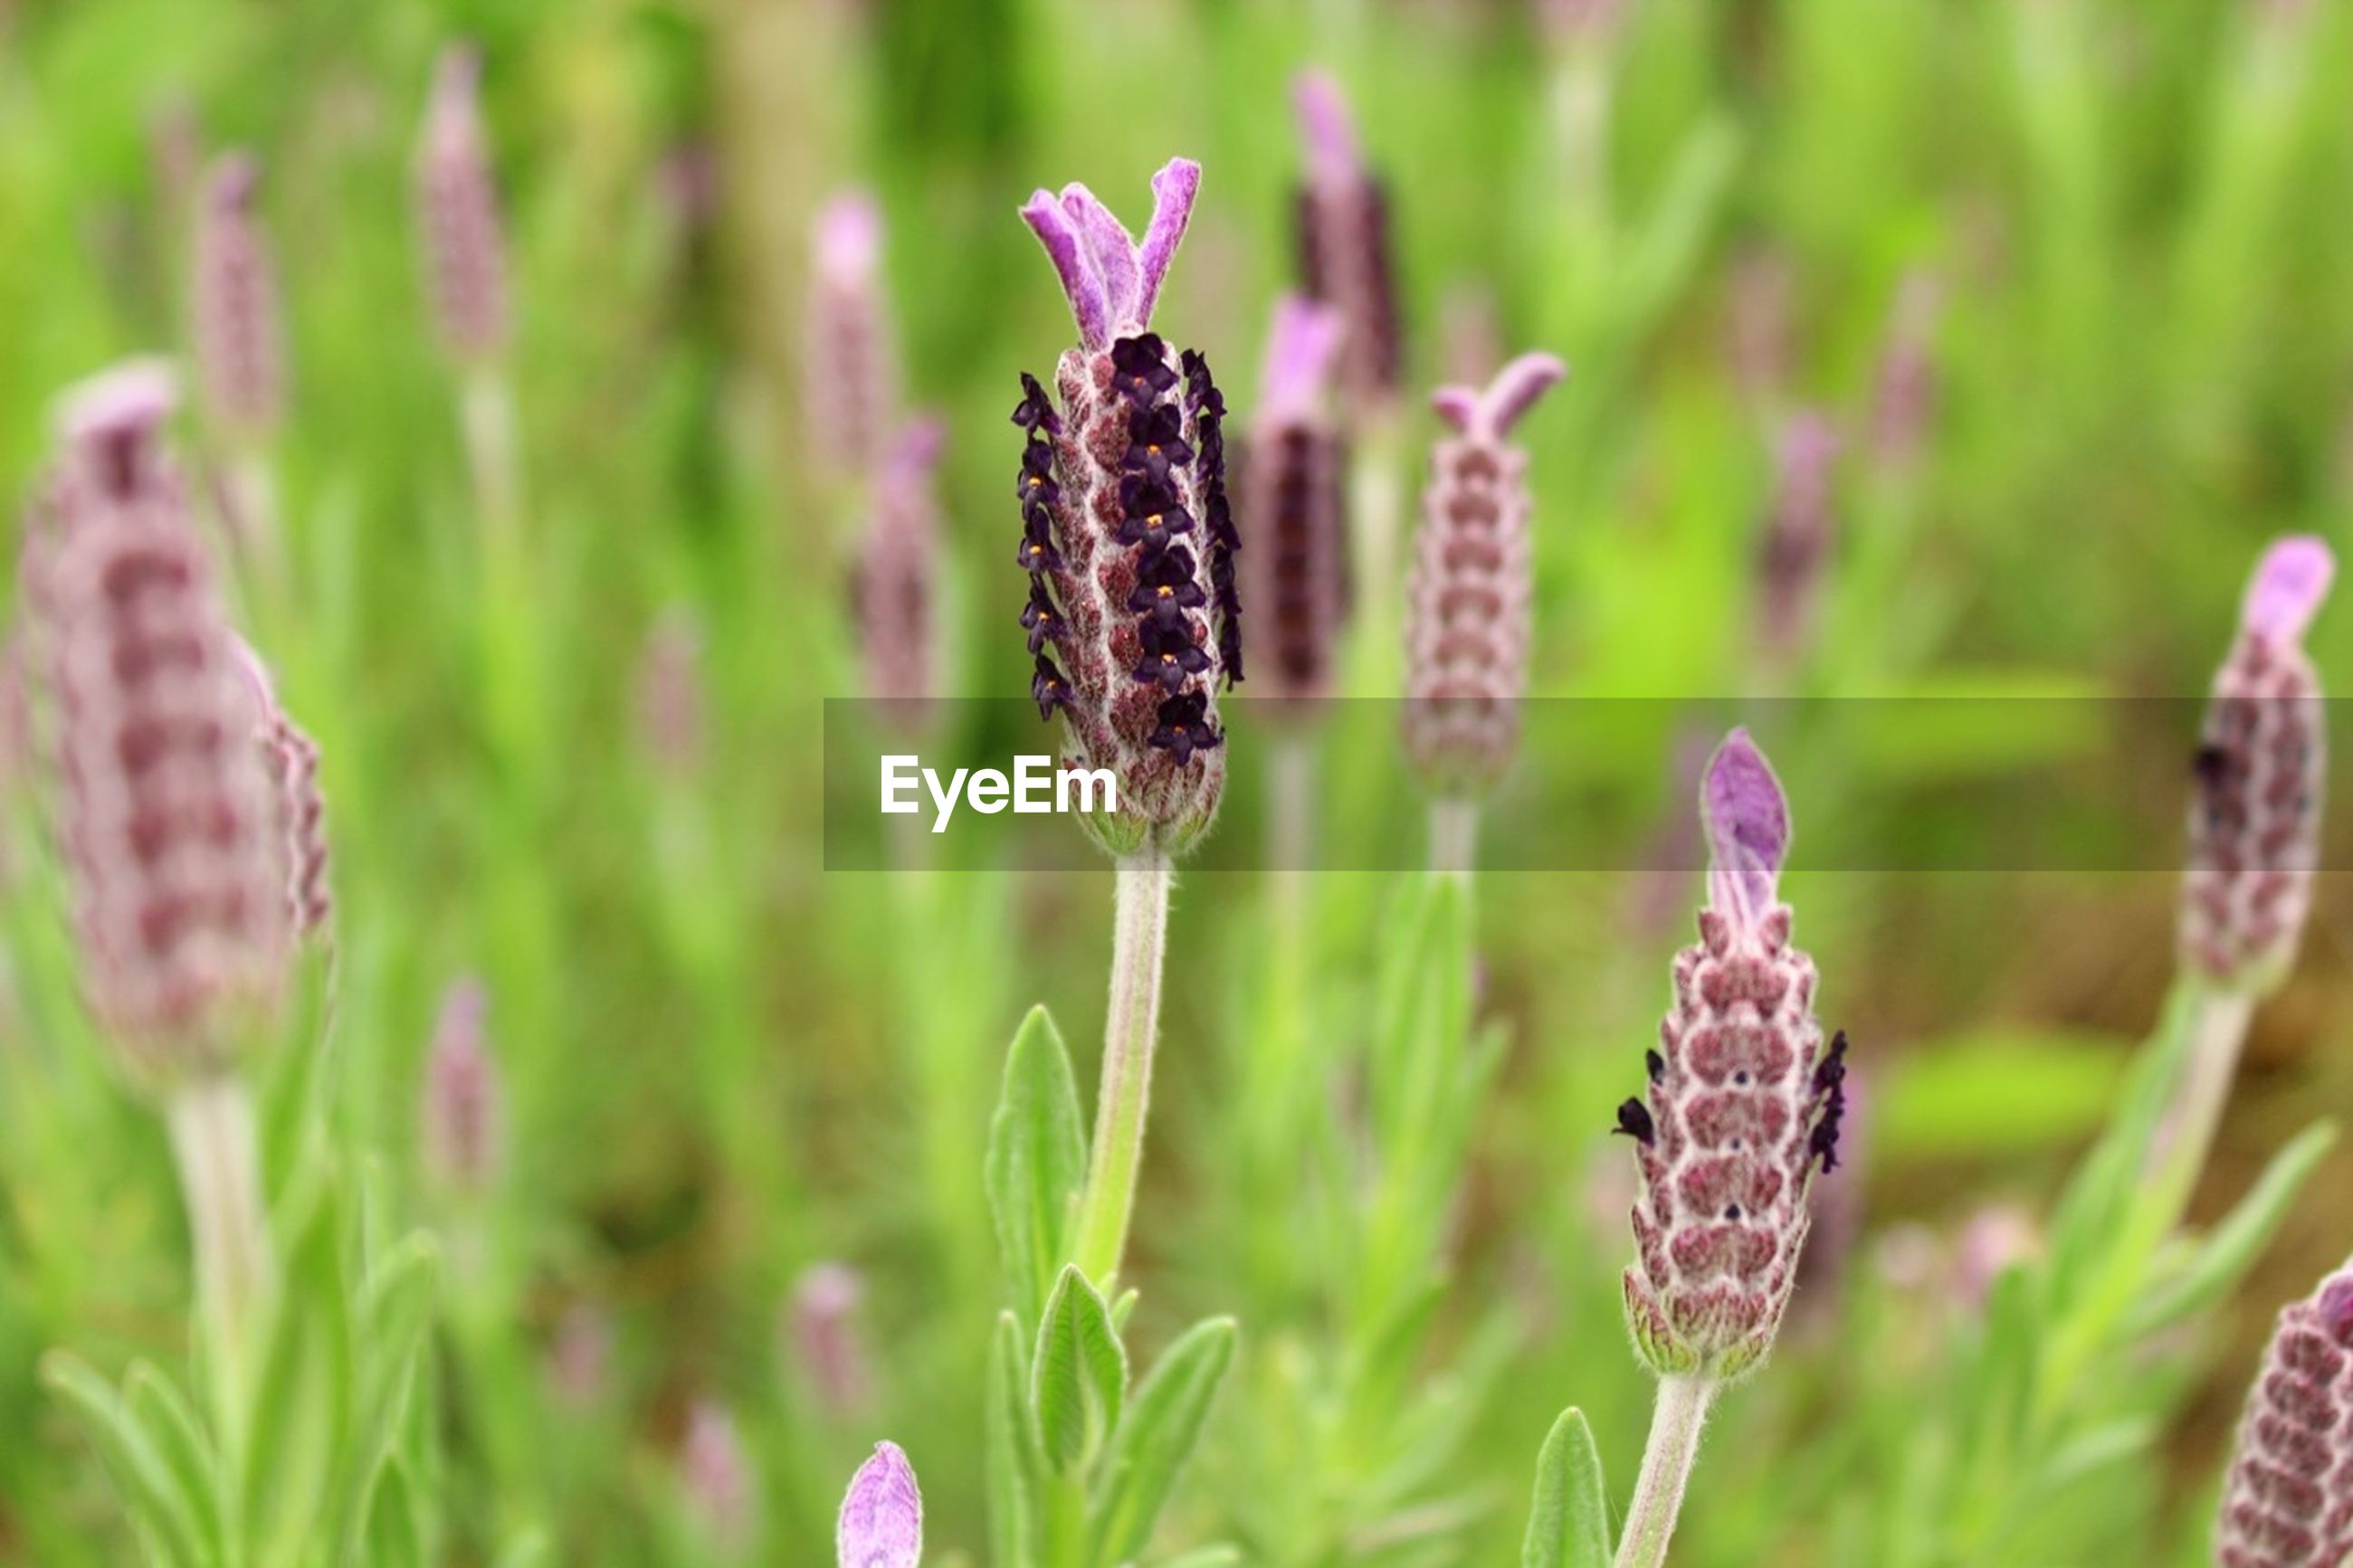 flower, growth, freshness, fragility, close-up, focus on foreground, plant, beauty in nature, nature, petal, purple, flower head, field, stem, selective focus, blooming, growing, bud, day, botany